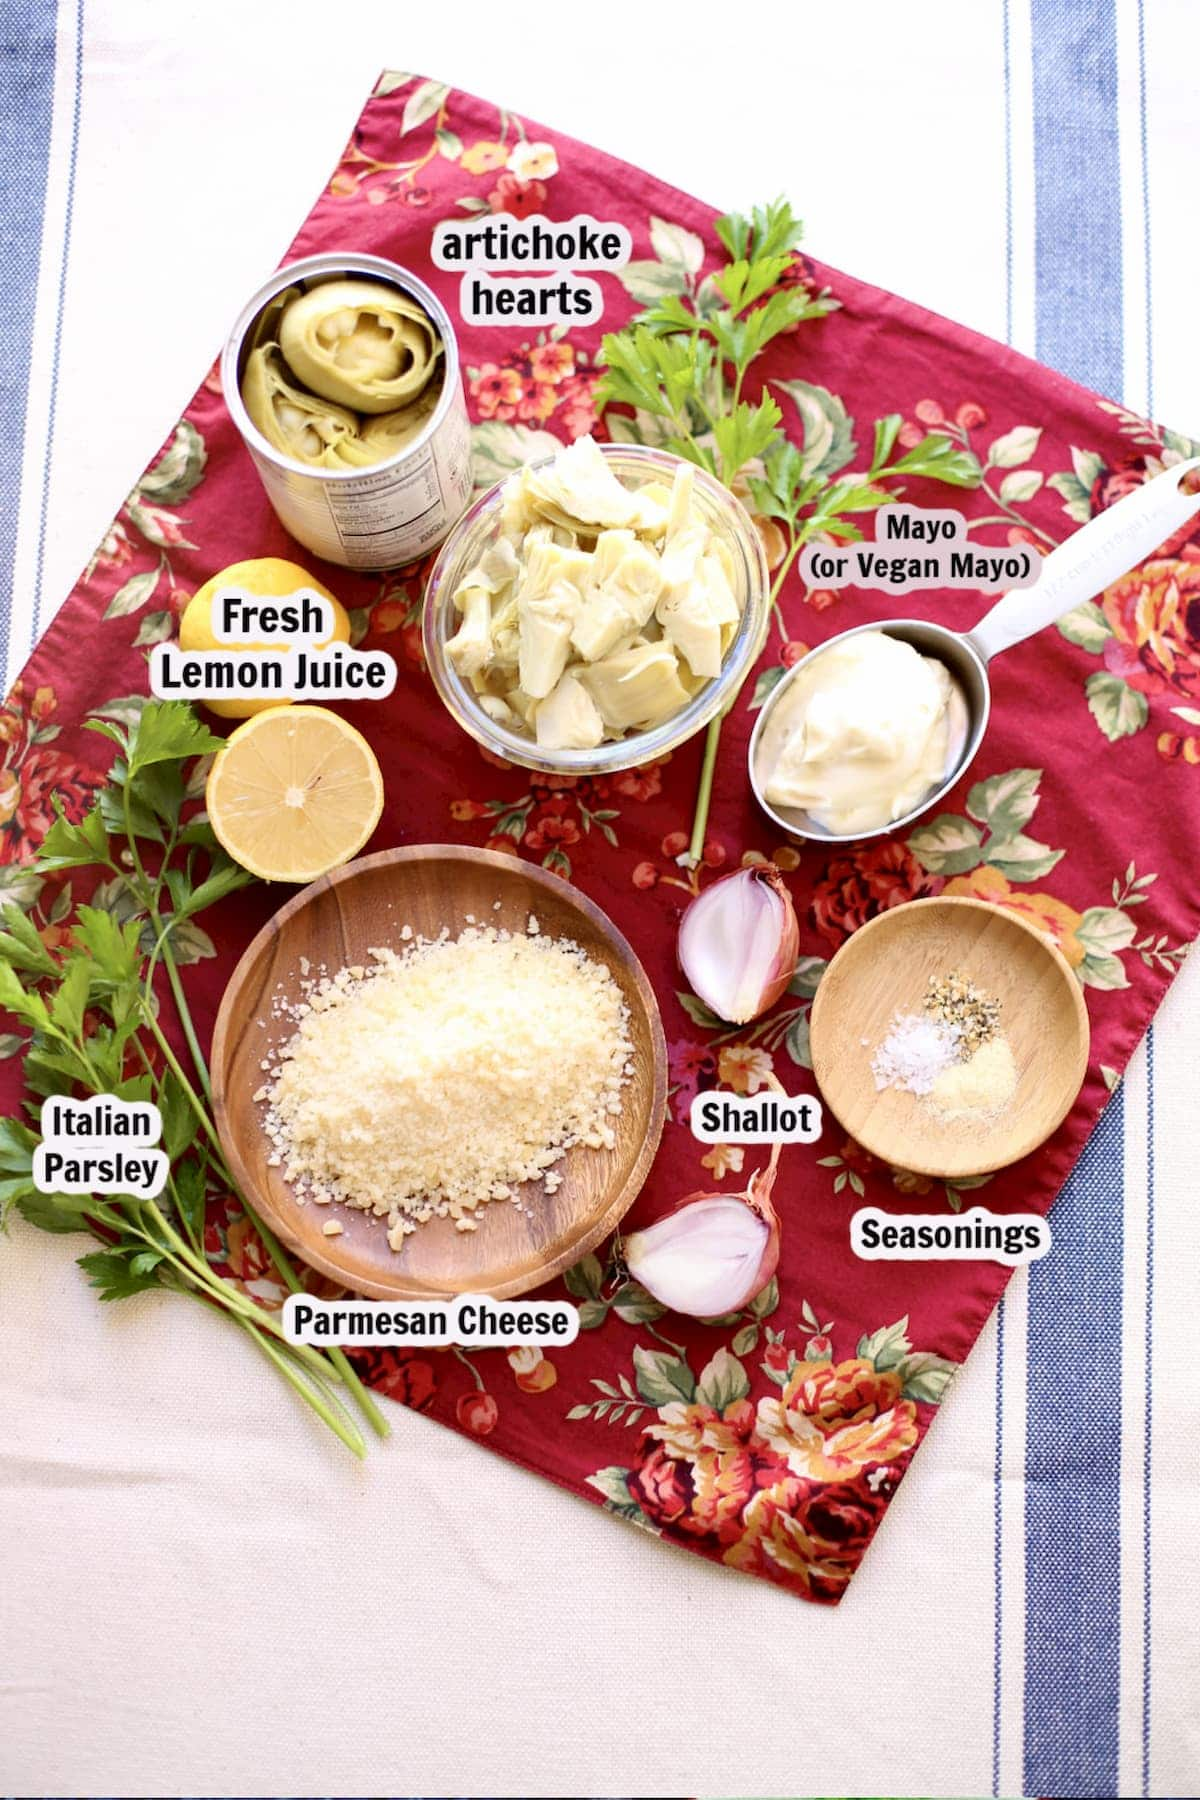 a spread of ingredients for artichoke dip with captions of each item, artichoke hearts, parmesan, etc.